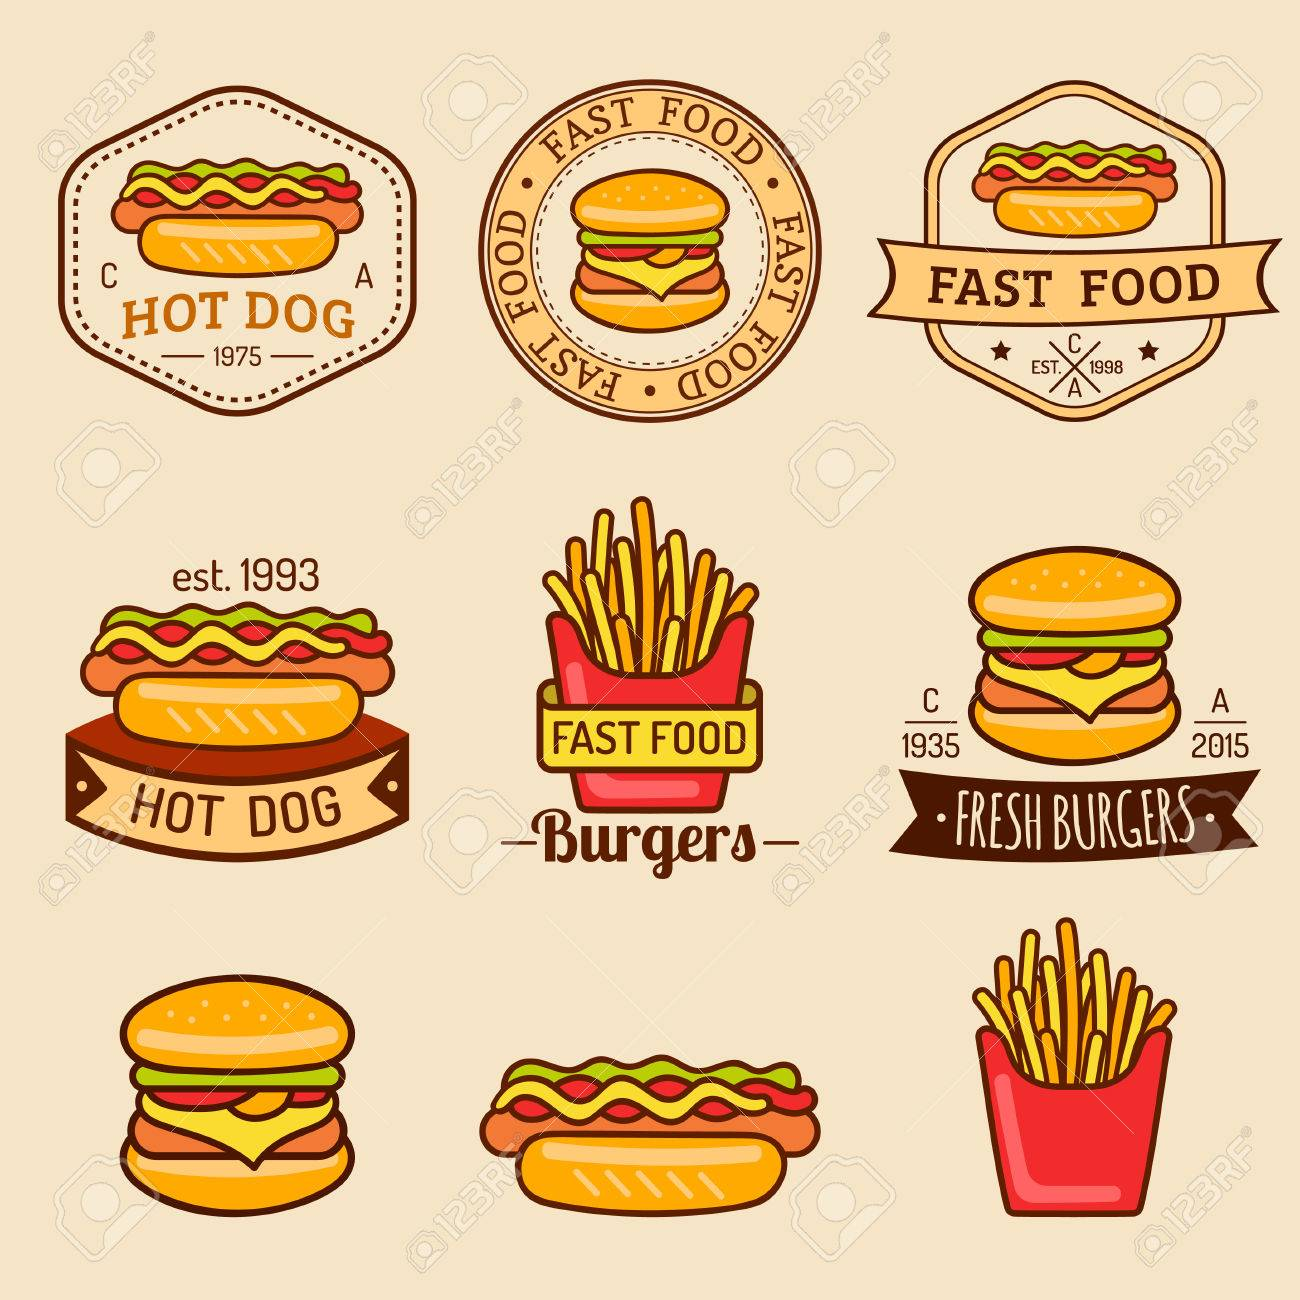 Vector Vintage Fast Food Logos Set Retro Eating Signs Collection Royalty Free Cliparts Vectors And Stock Illustration Image 75330293